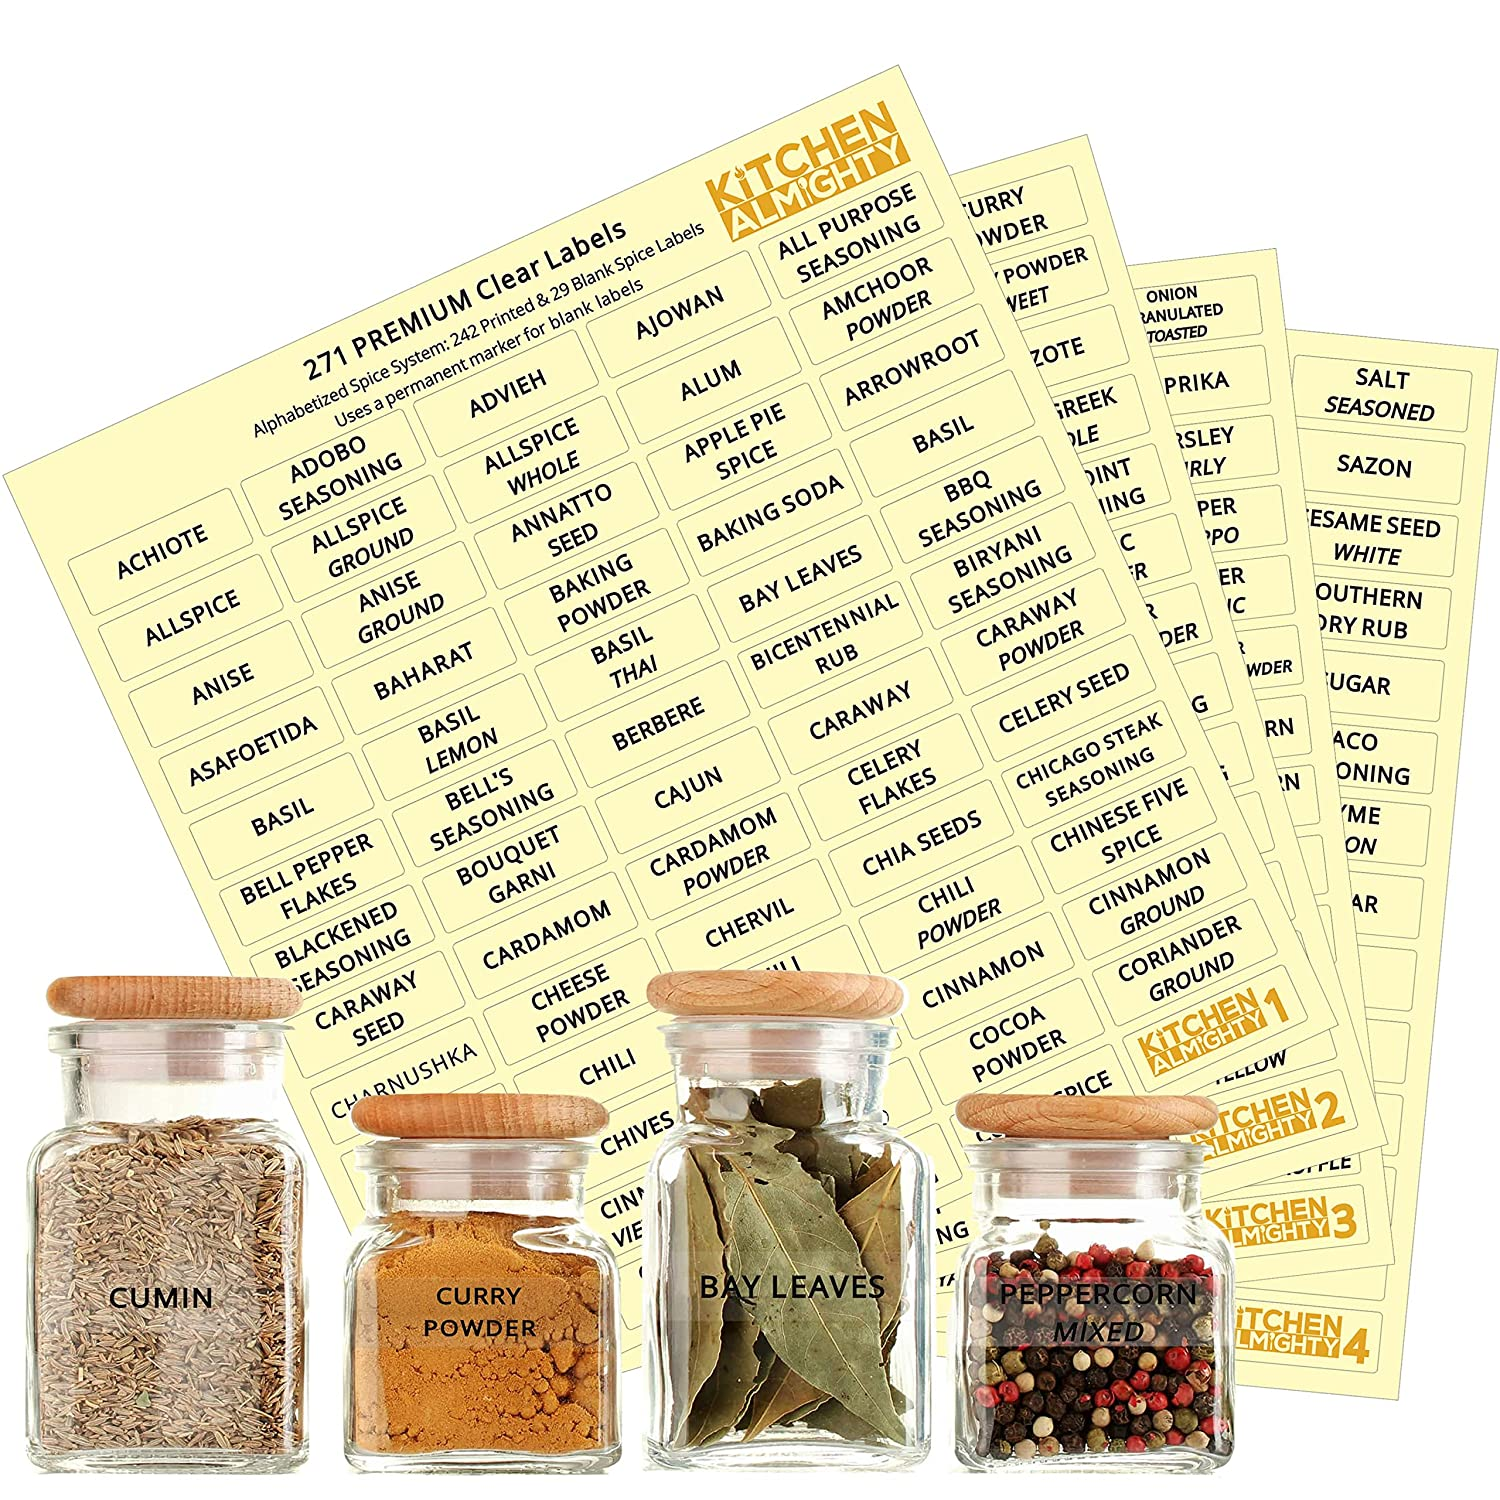 Kitchen almighty 271 spice labels 242 spice herb names 29 blank labels thicker labels backing paper alphabetized spice label system clear round